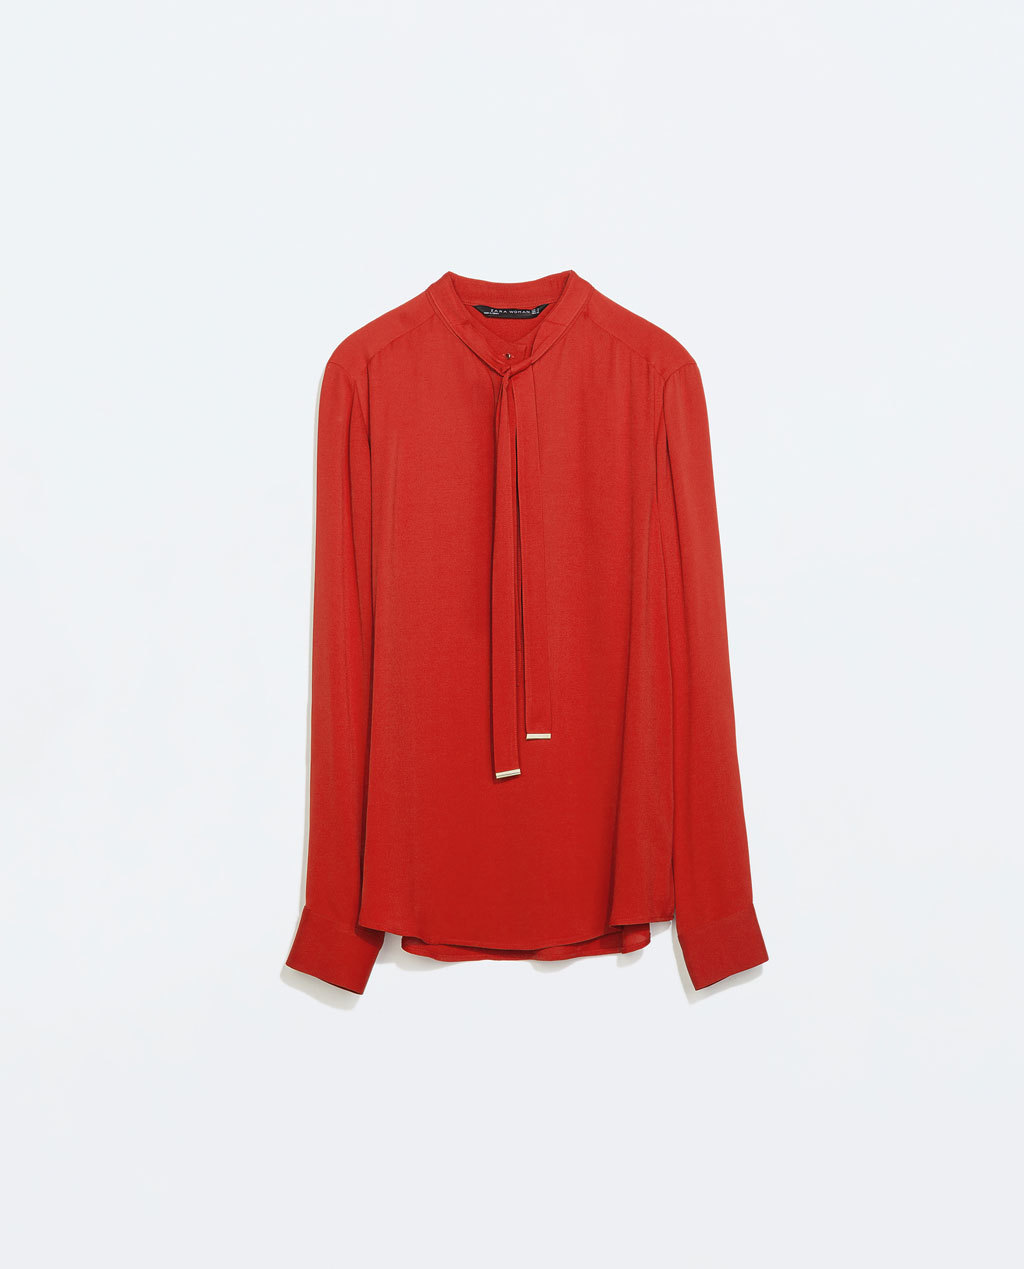 Bowed Blouse - pattern: plain; length: below the bottom; neckline: pussy bow; style: blouse; predominant colour: bright orange; occasions: casual, work, creative work; fibres: viscose/rayon - 100%; fit: straight cut; sleeve length: long sleeve; sleeve style: standard; texture group: crepes; trends: zesty shades; season: a/w 2014